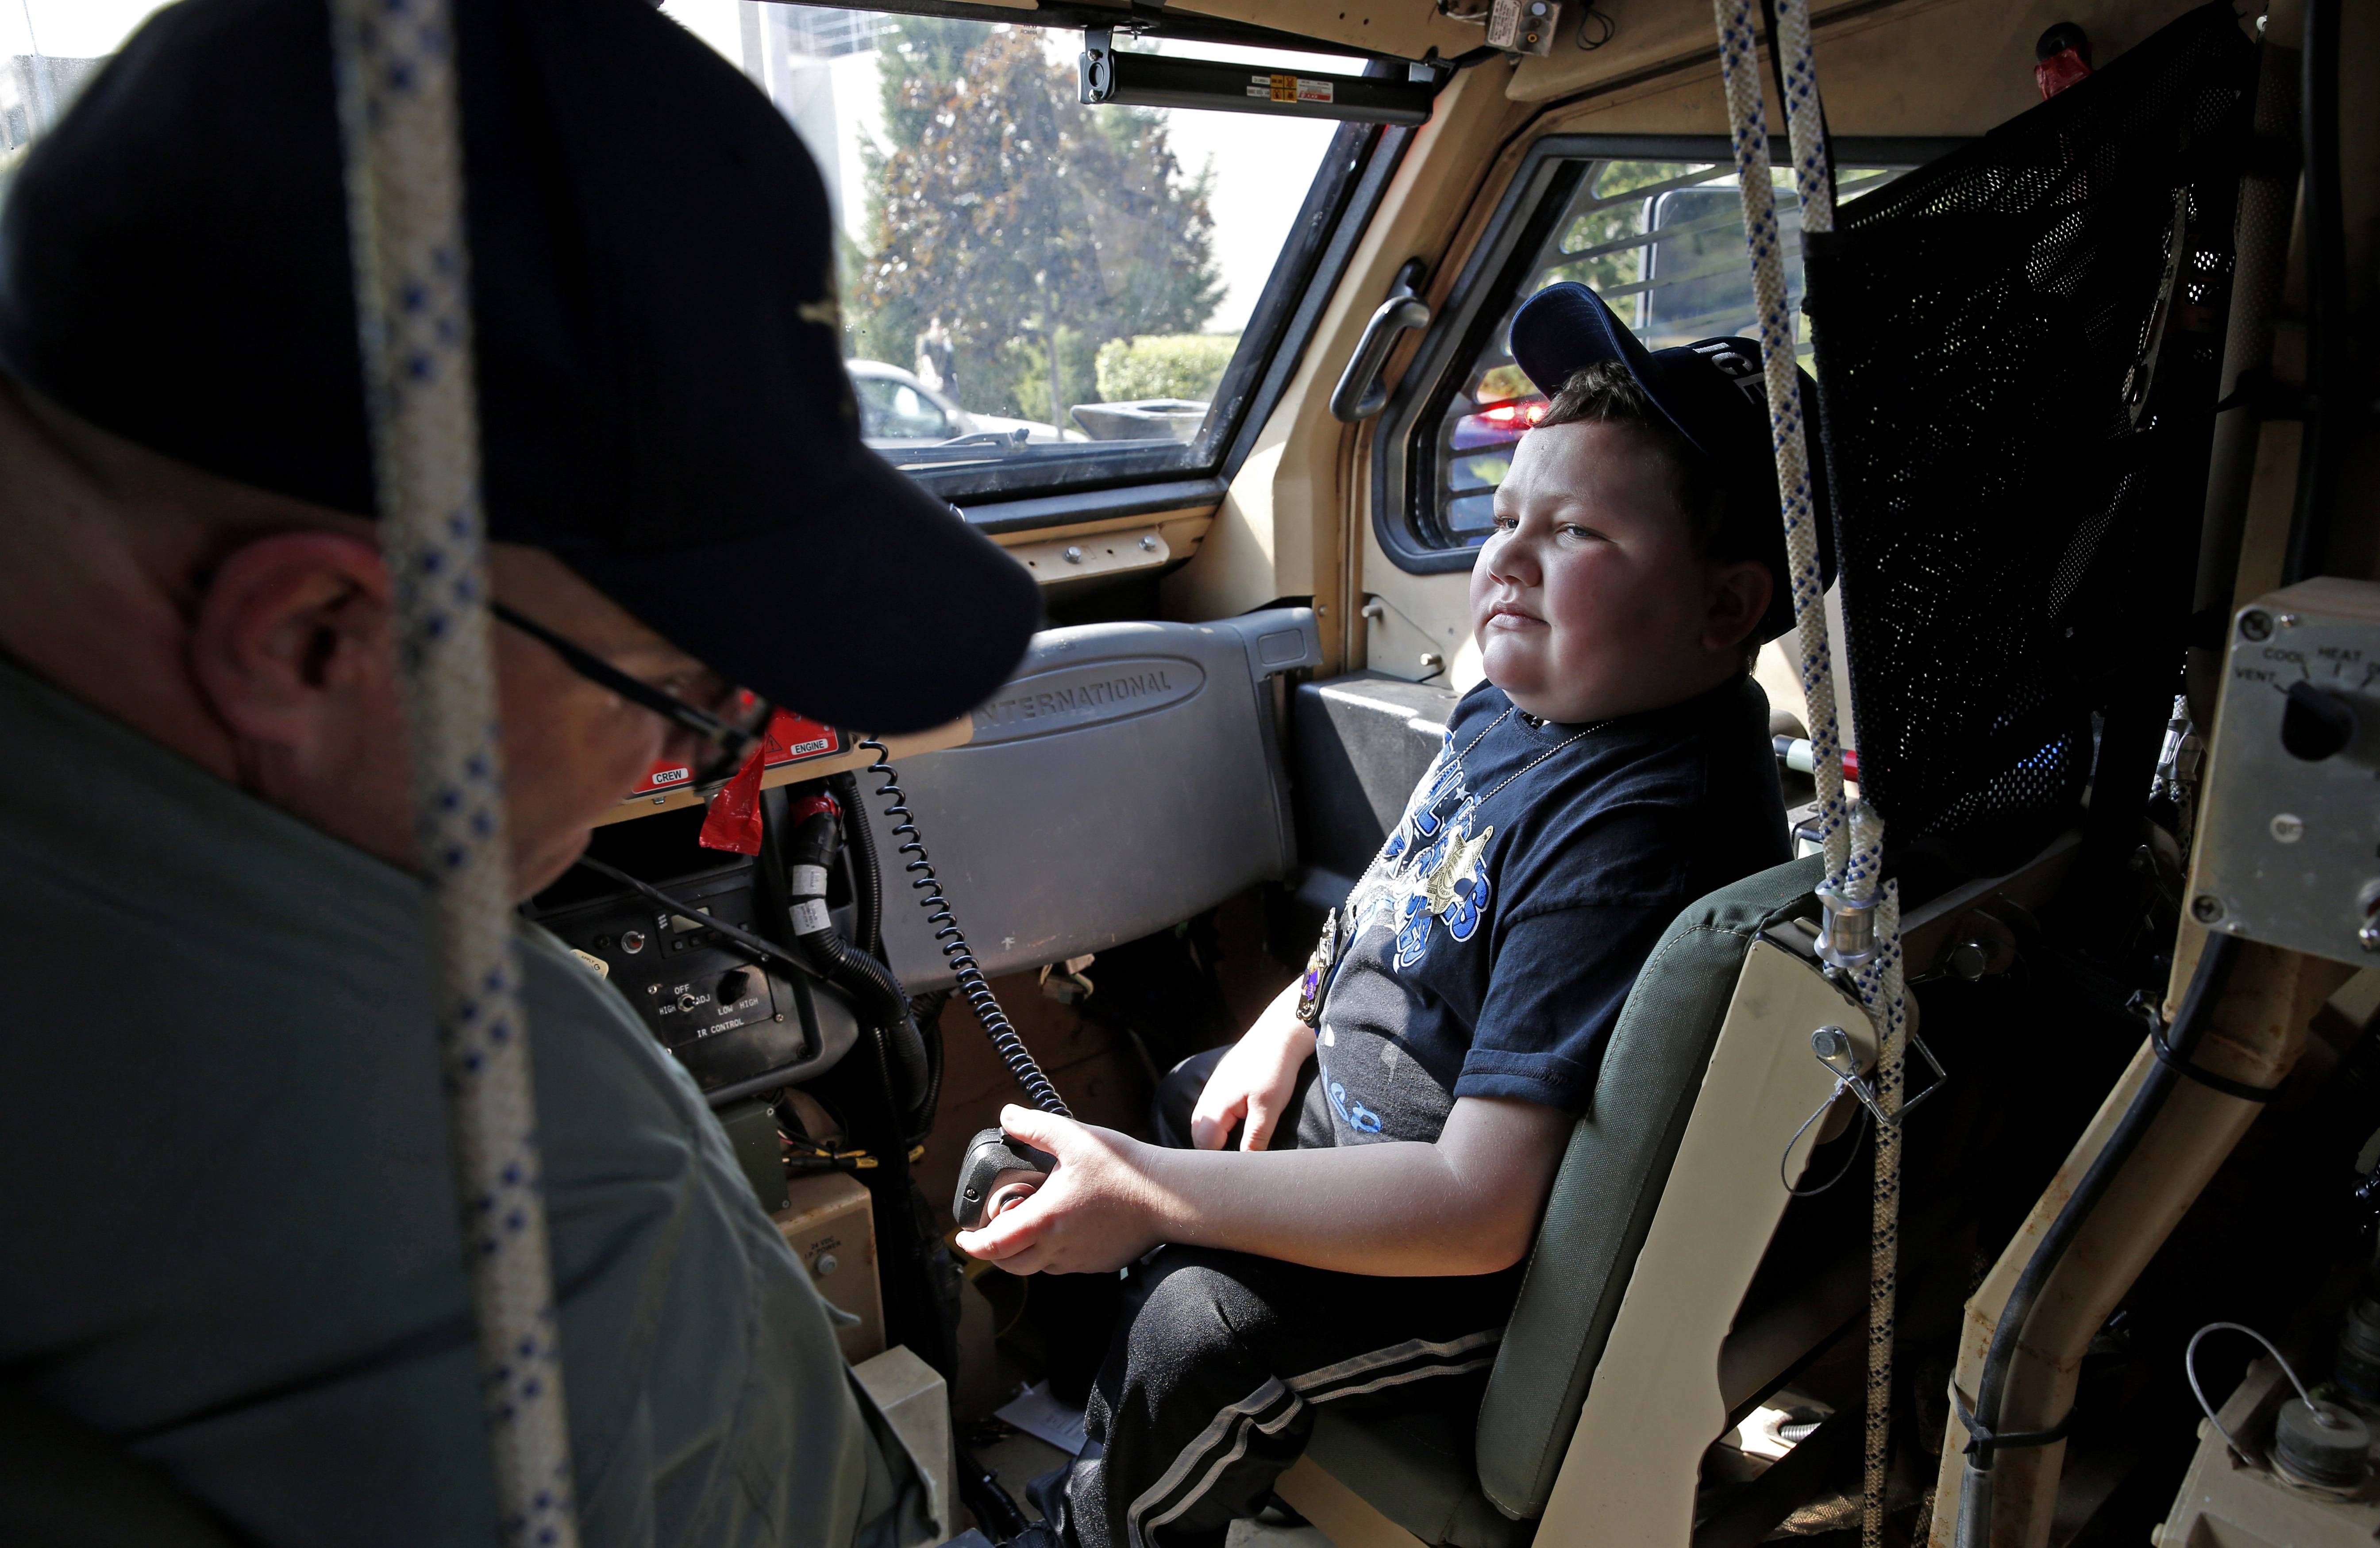 Drake Price, an 11-year-old patient who is receiving treatment for a brain tumor at the Northwestern Medicine Chicago Proton Center in Warrenville, takes front seat Tuesday in an armored personnel carrier from the DuPage County sheriff's office's SWAT team under the direction of Special Operations Sgt. Tom Hoffman.